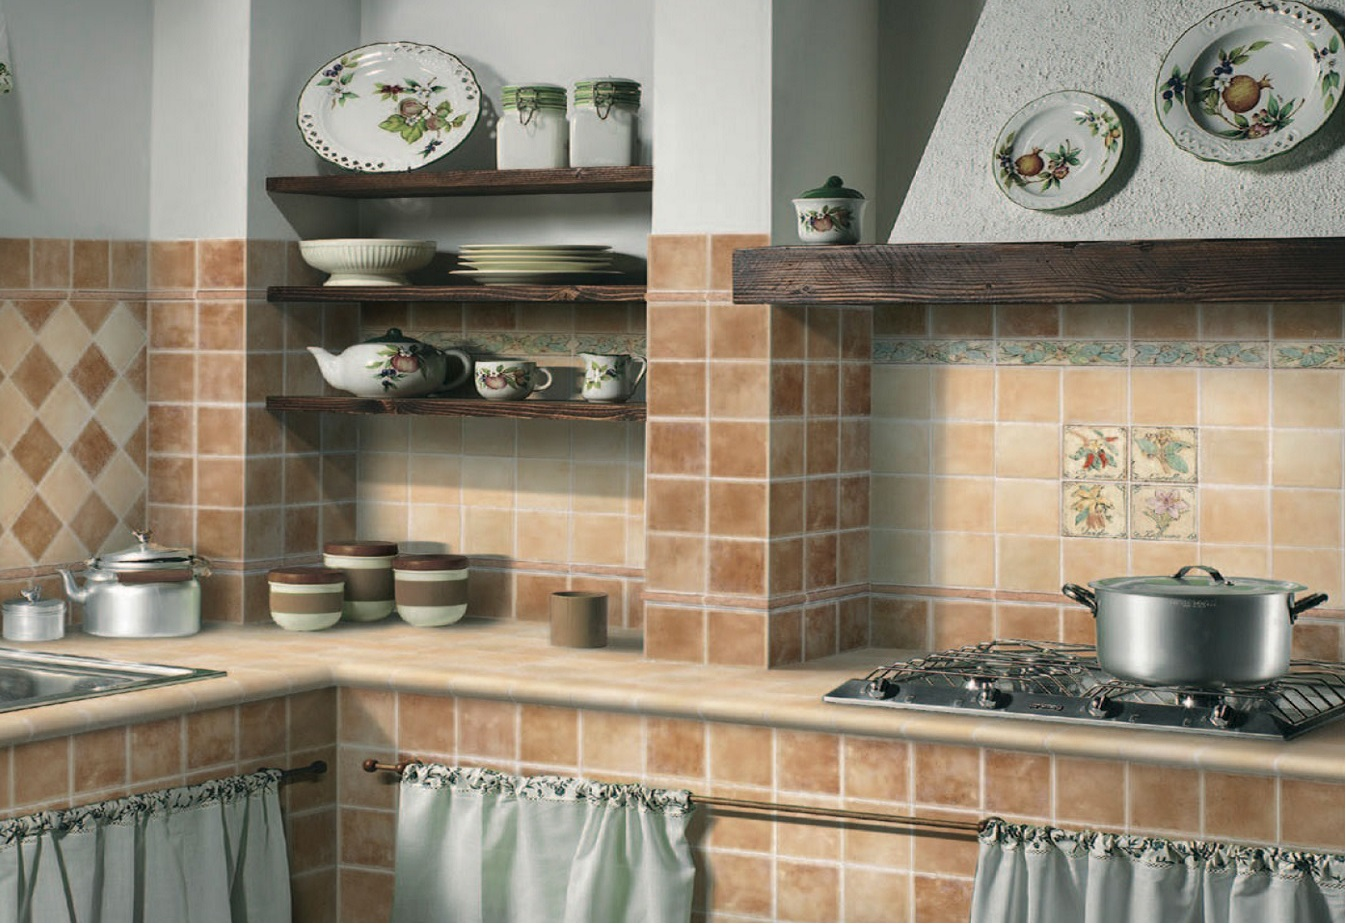 Awesome Piastrelle 10x10 Cucina Gallery - Embercreative.us ...